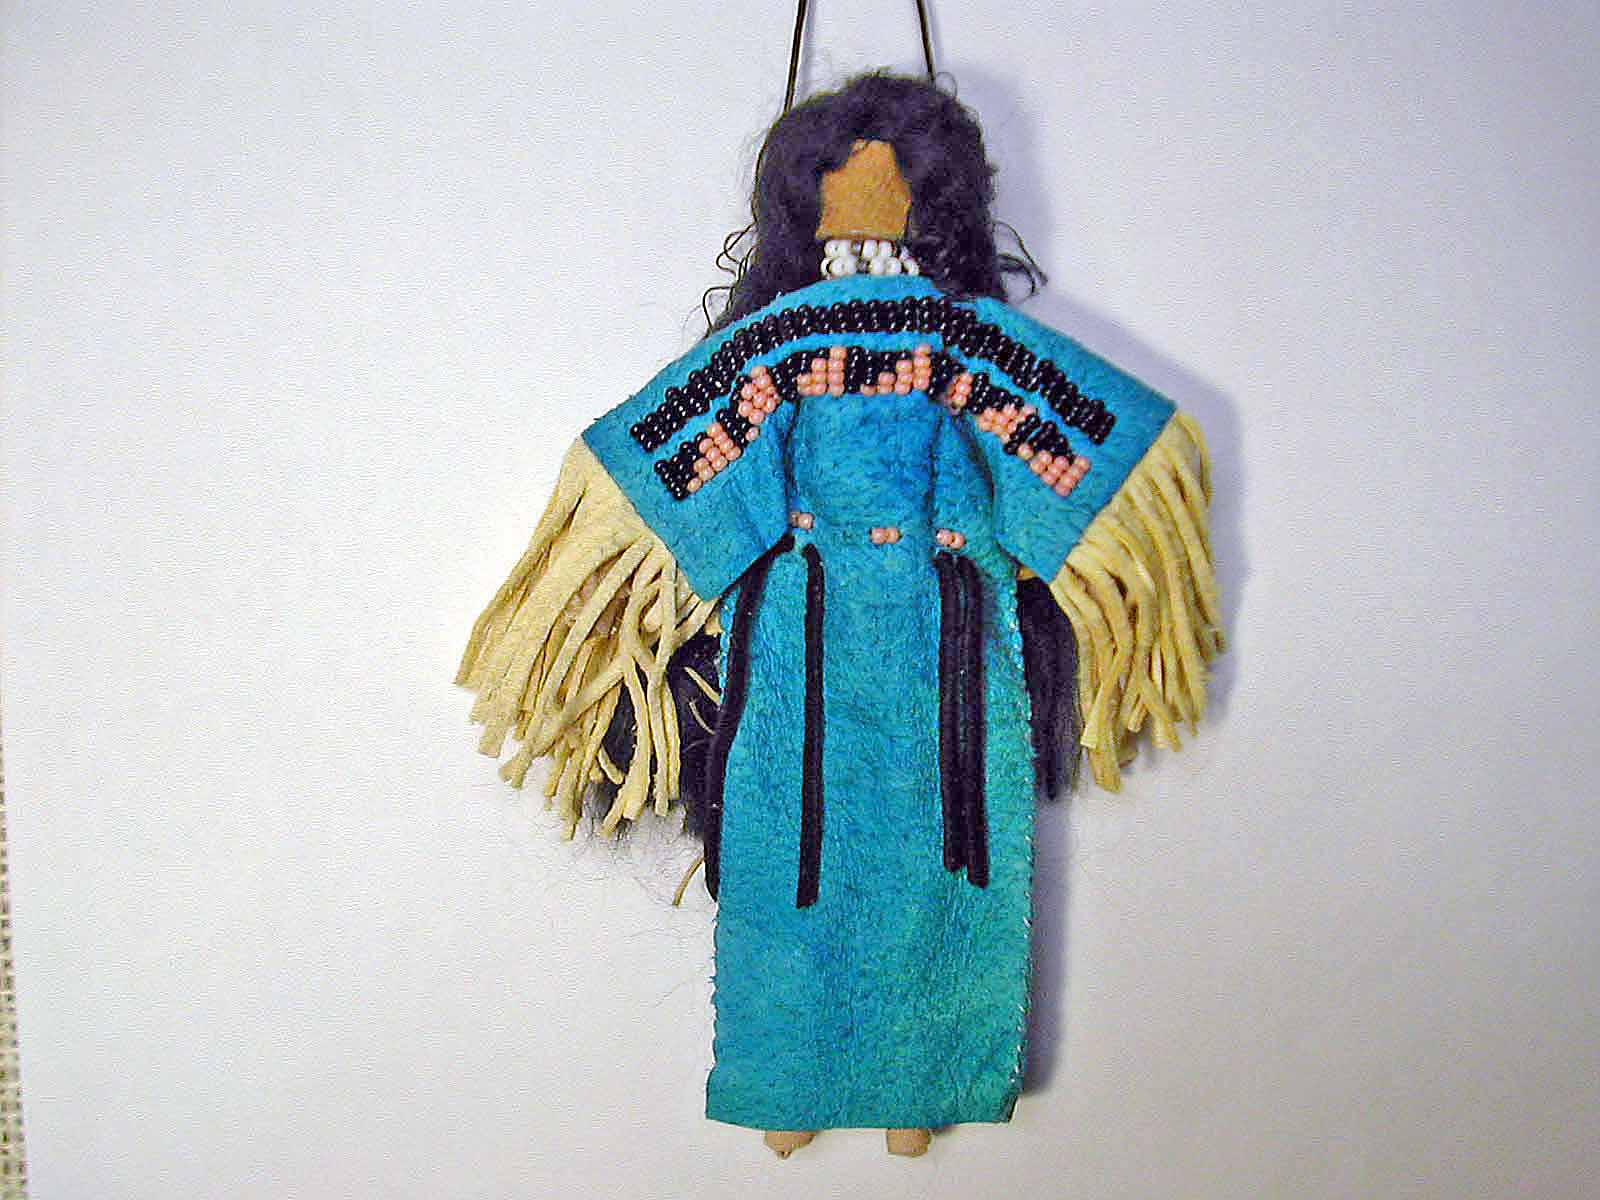 Native american ornaments - These Two Native American Indian Doll Ornaments Have Some Beading On The Front I Originally Designed And Created These Dolls A Few Years Back And Really